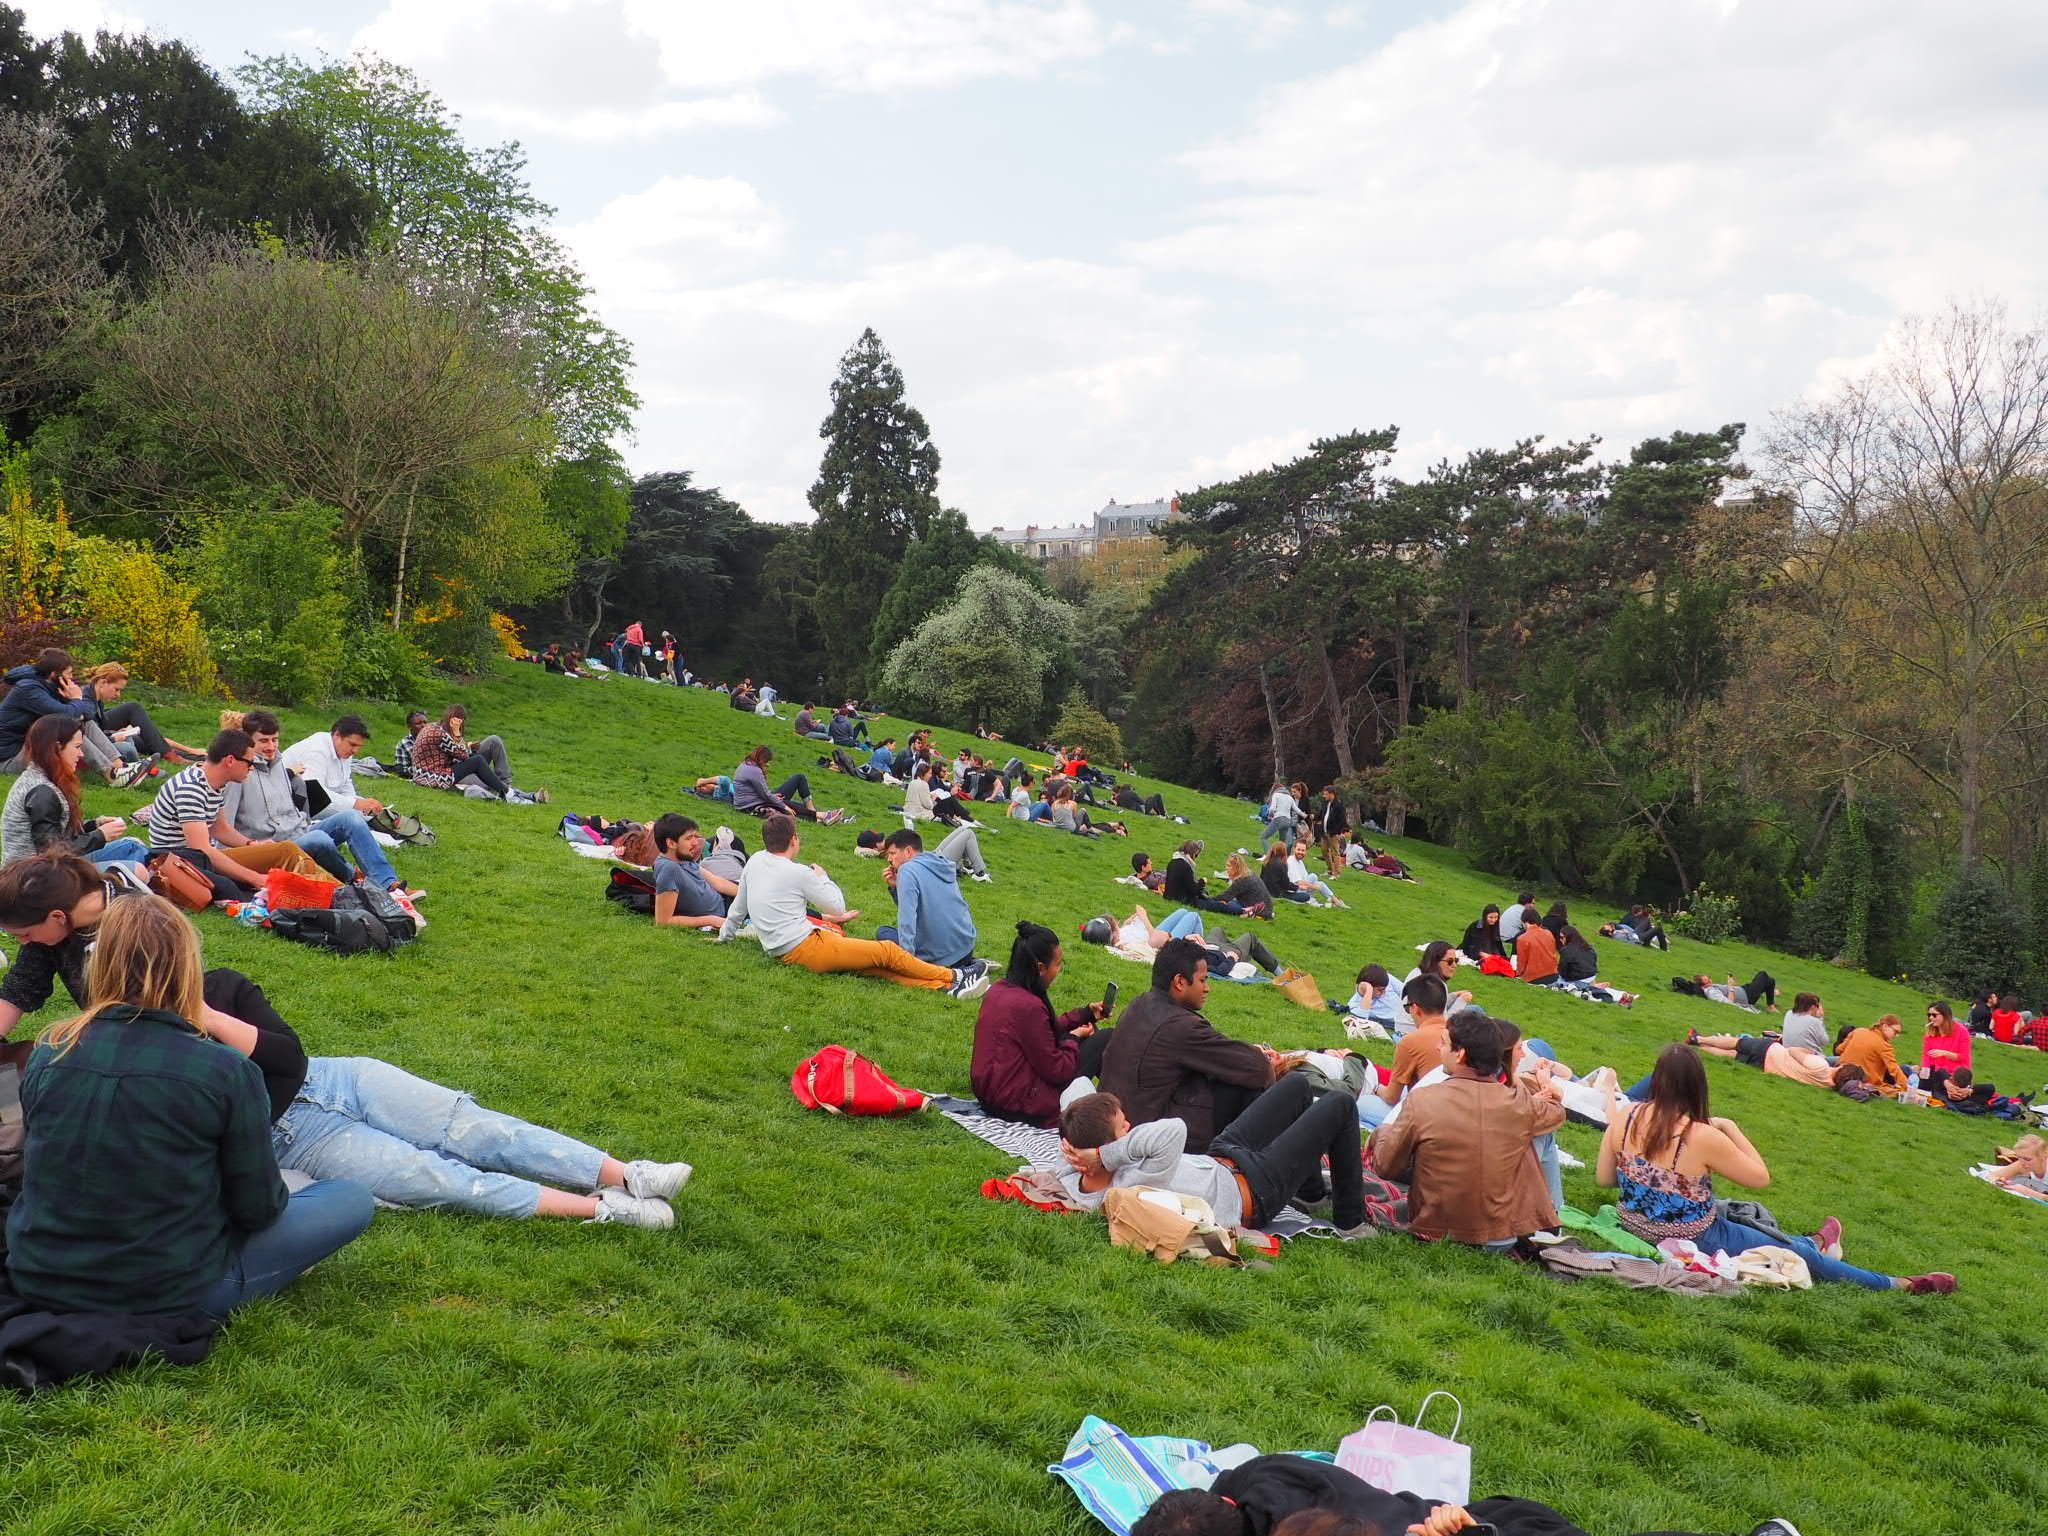 Our guide to spending Sundays like a local in Paris includes tanning in a park, like these Parisians.